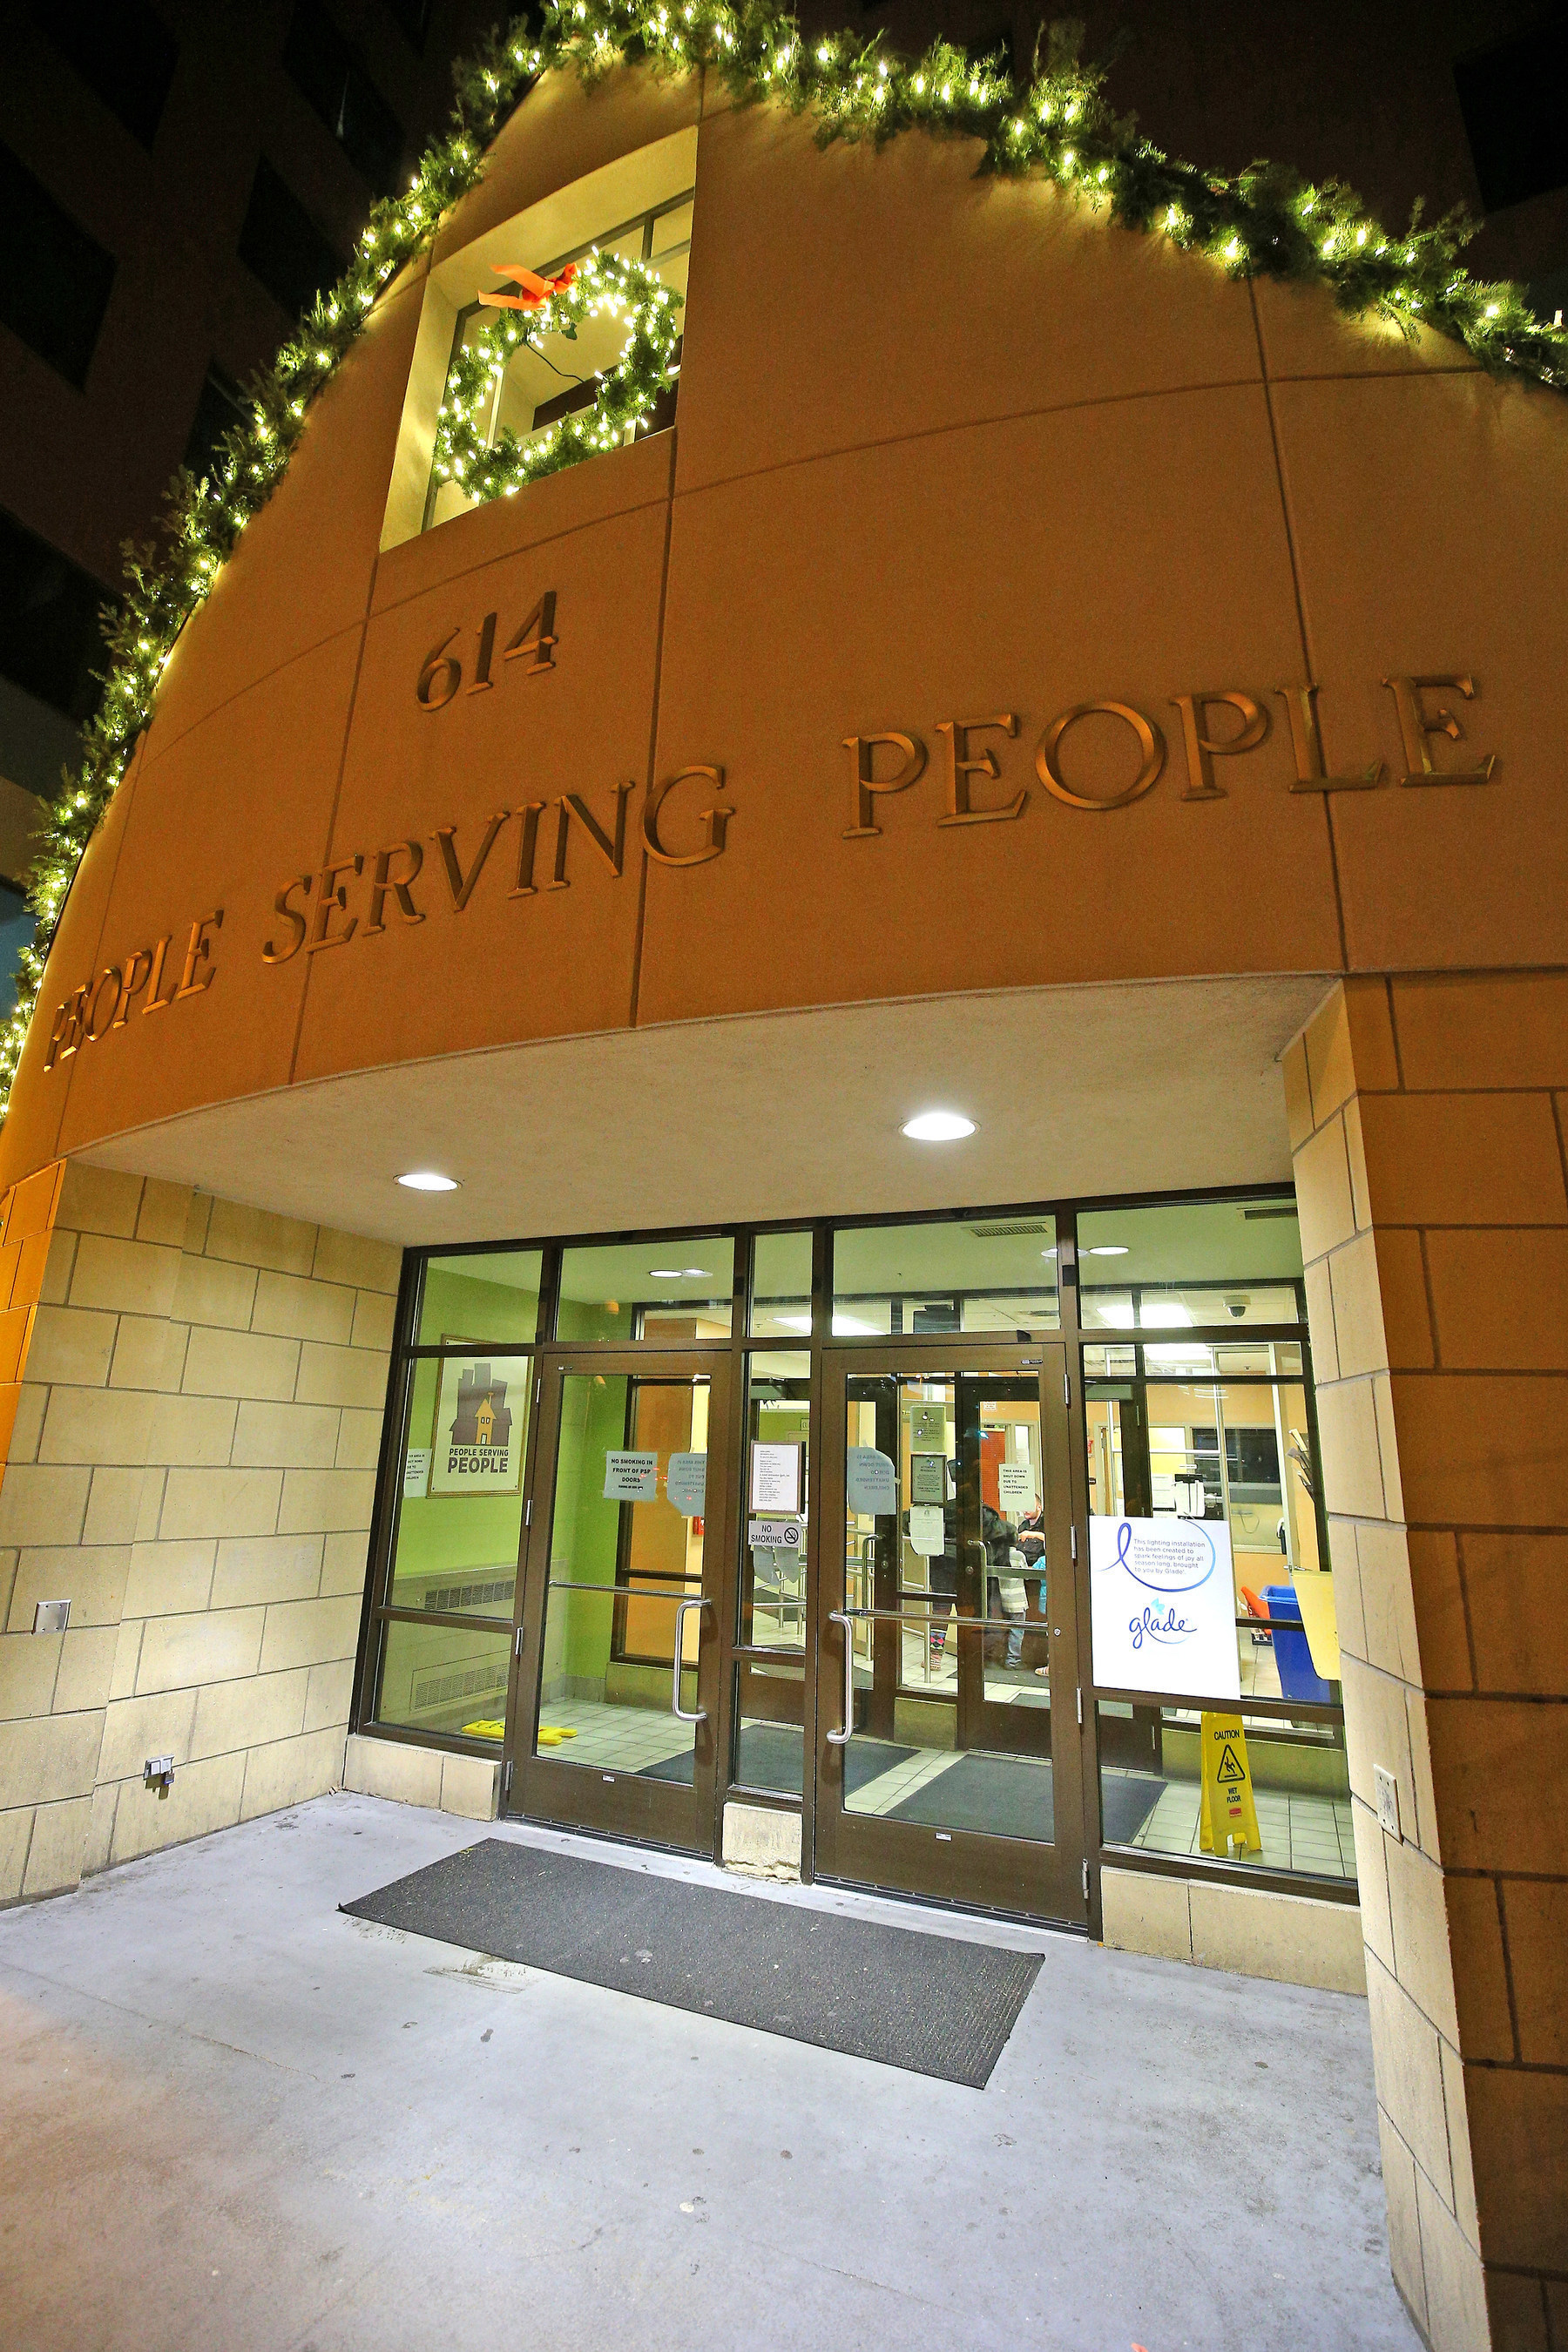 Glade(R) decorated the People Serving People shelter in Minneapolis, Minnesota on Tuesday, November 24, 2015 to deliver holiday cheer and provide a bright and joyous destination for families to visit this holiday season. (Adam Bettcher/Getty Images for SC Johnson)